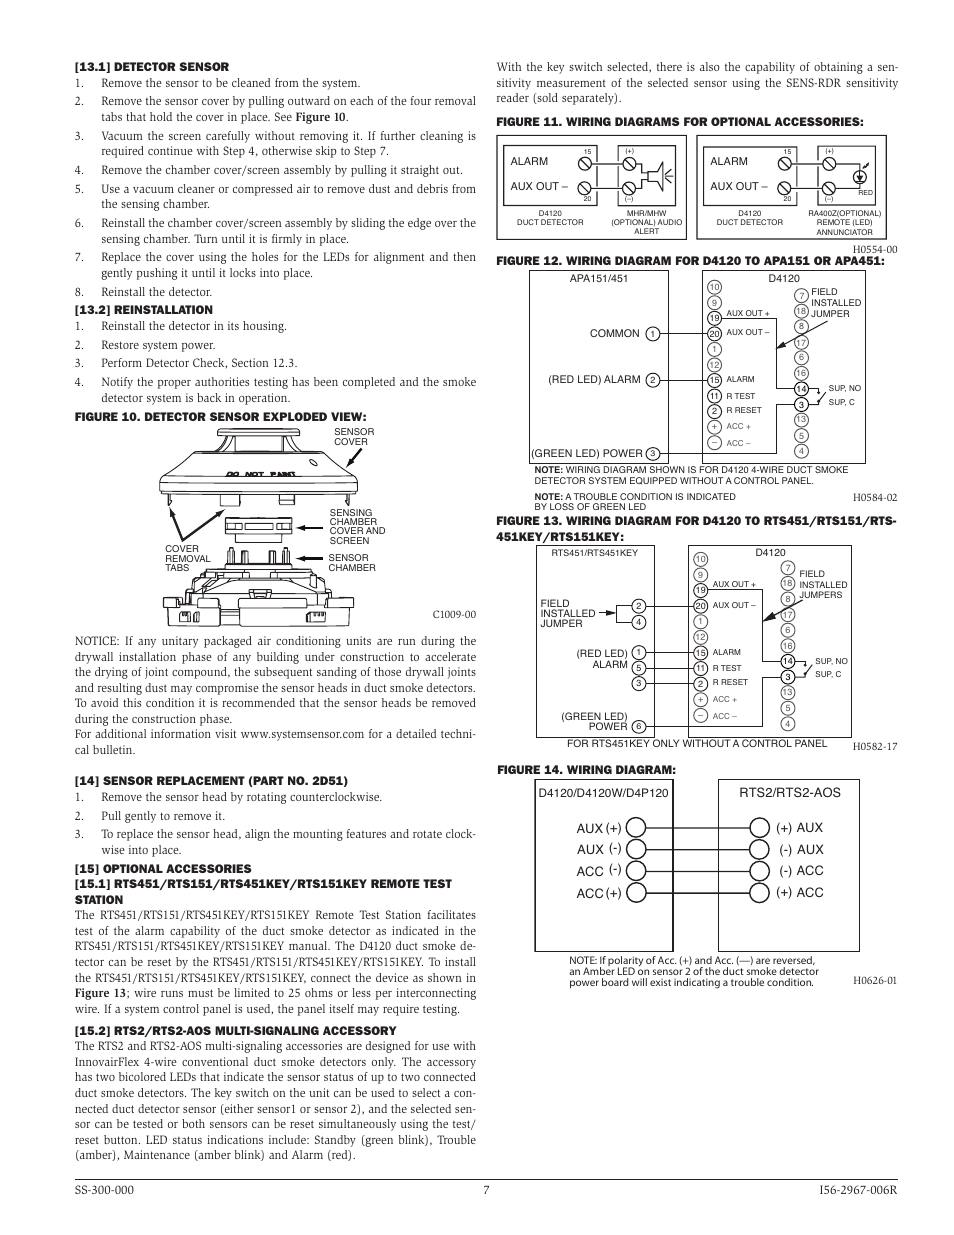 medium resolution of  system sensor d4120 d4p120 and d4s page7 system sensor d4120 d4p120 and d4s user system sensor conventional smoke detector wiring diagram